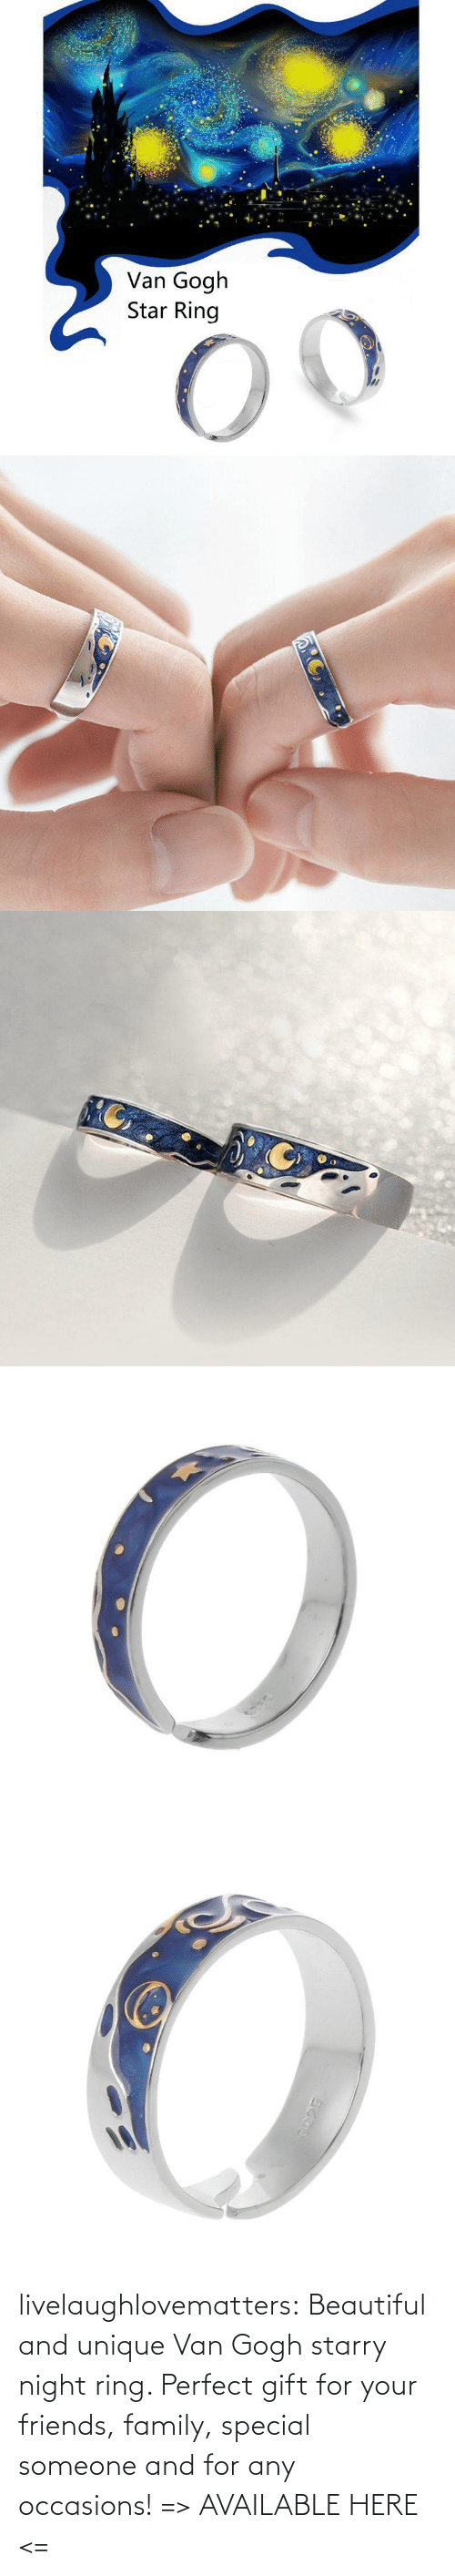 van: livelaughlovematters: Beautiful and unique Van Gogh starry night ring. Perfect gift for your friends, family, special someone and for any occasions! => AVAILABLE HERE <=